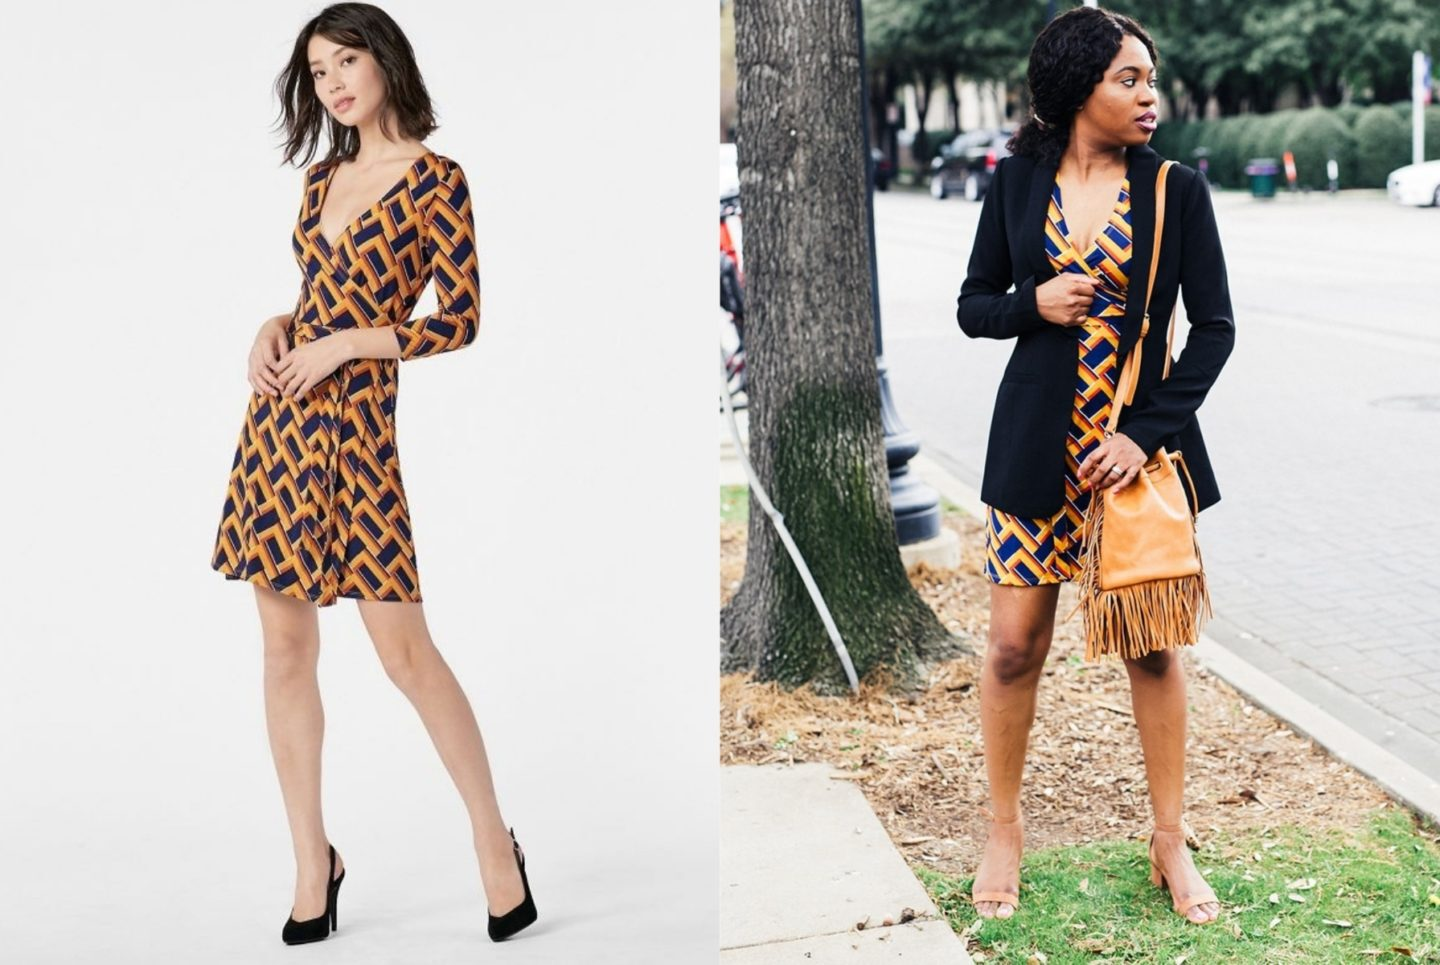 This is my honest review after spending my hard-earned money shopping for dresses and shoes on JustFab. Is JustFab legit or scam? A side by side comparing wearing a JustFab 3/4 Sleeve Wrap Dress.